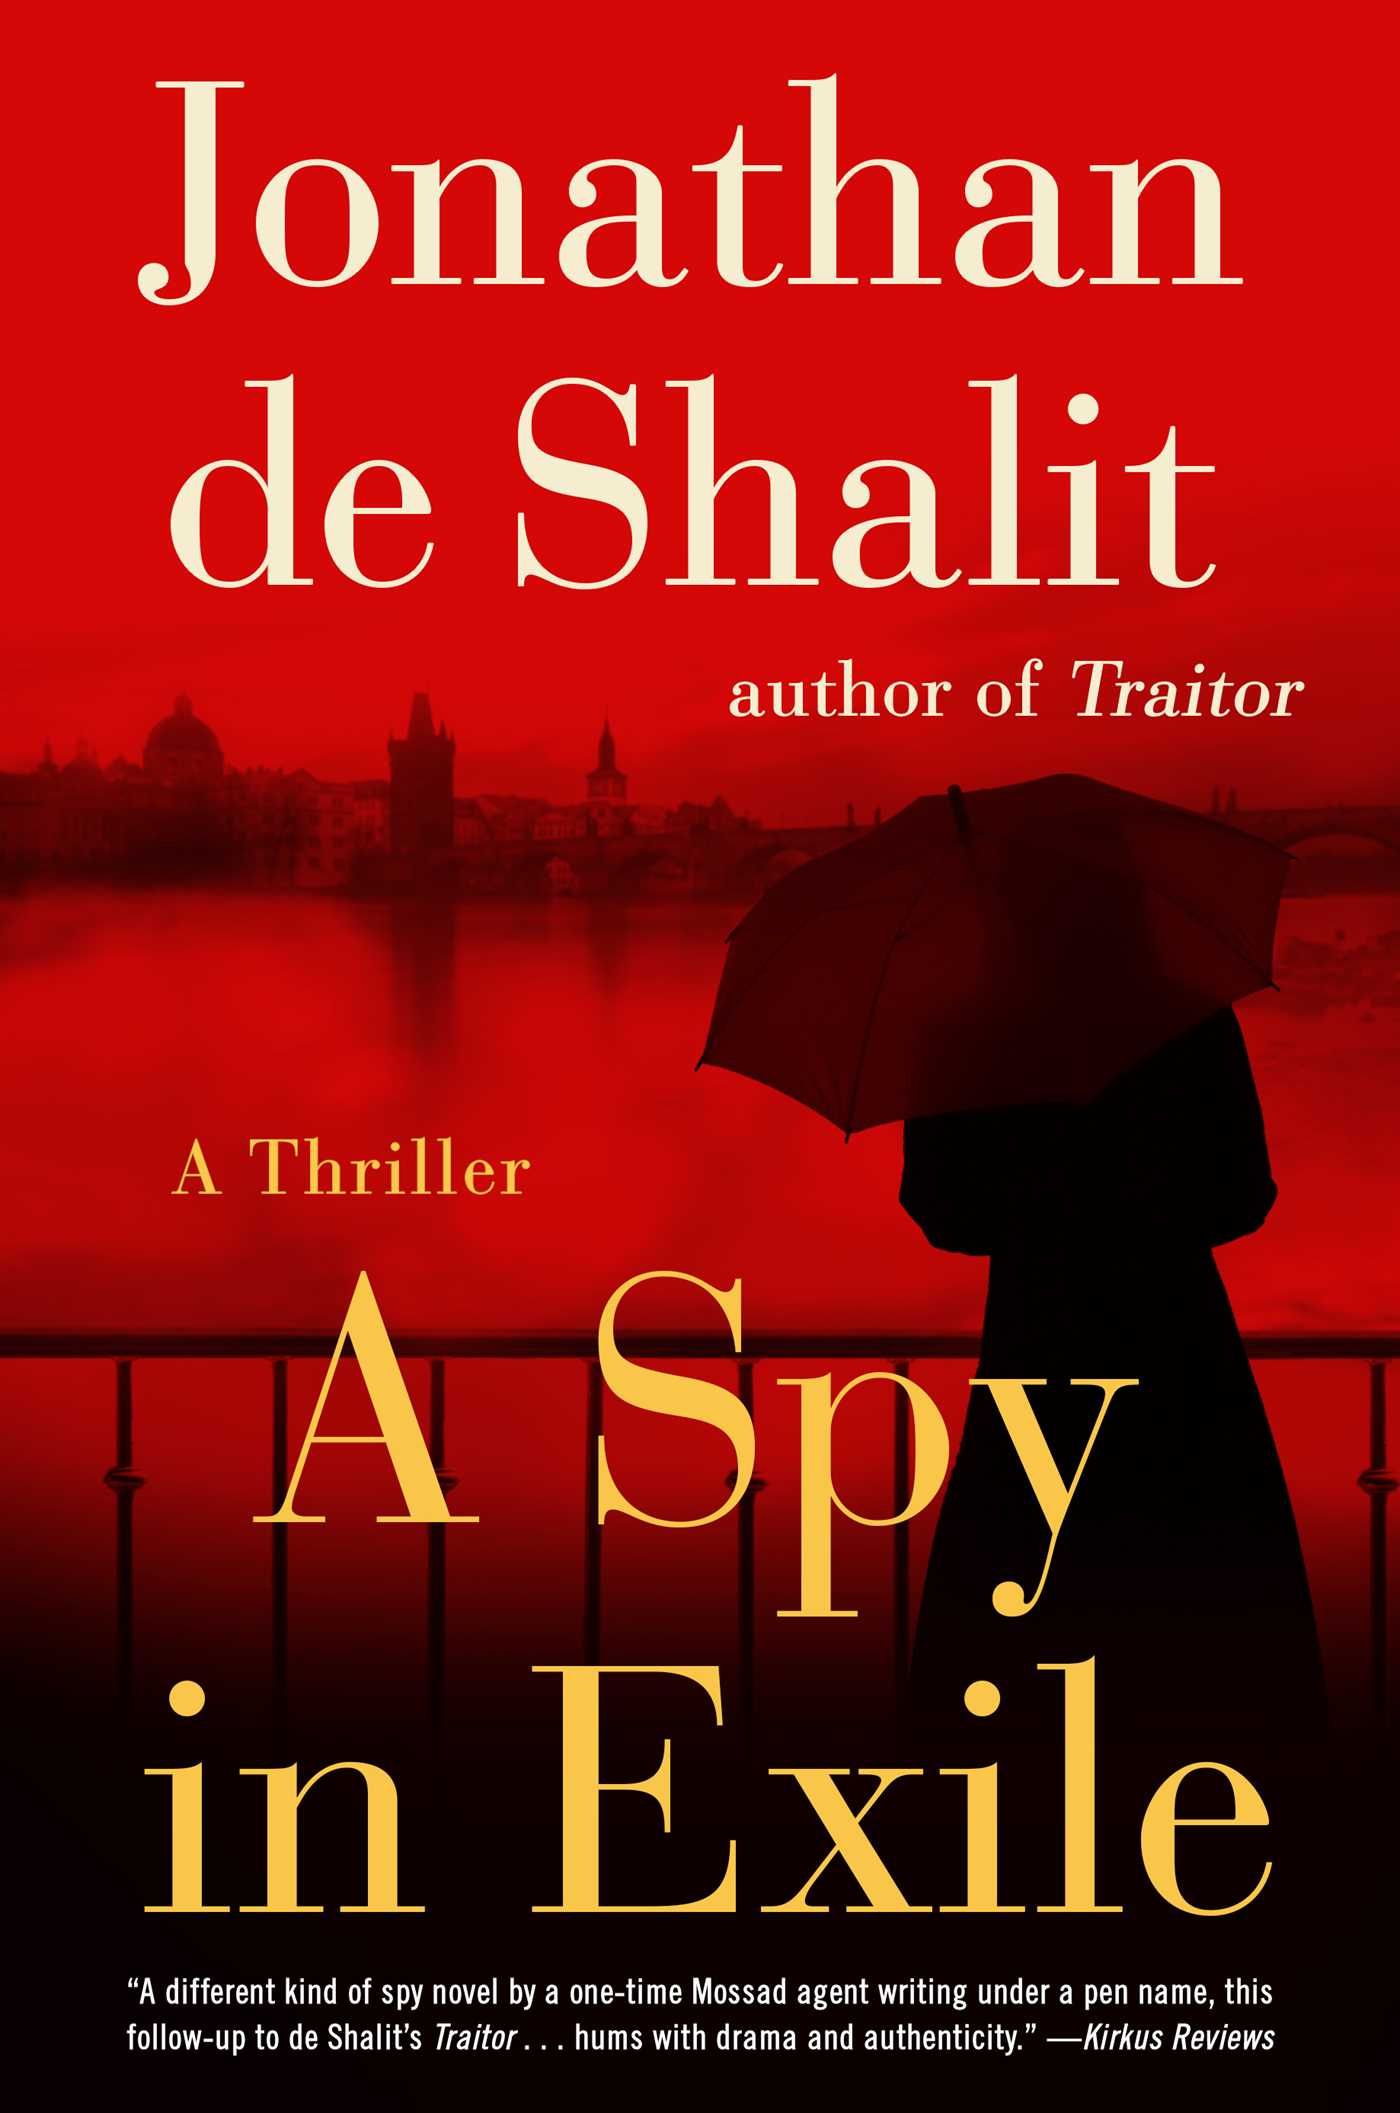 A spy in exile 9781501170560 hr